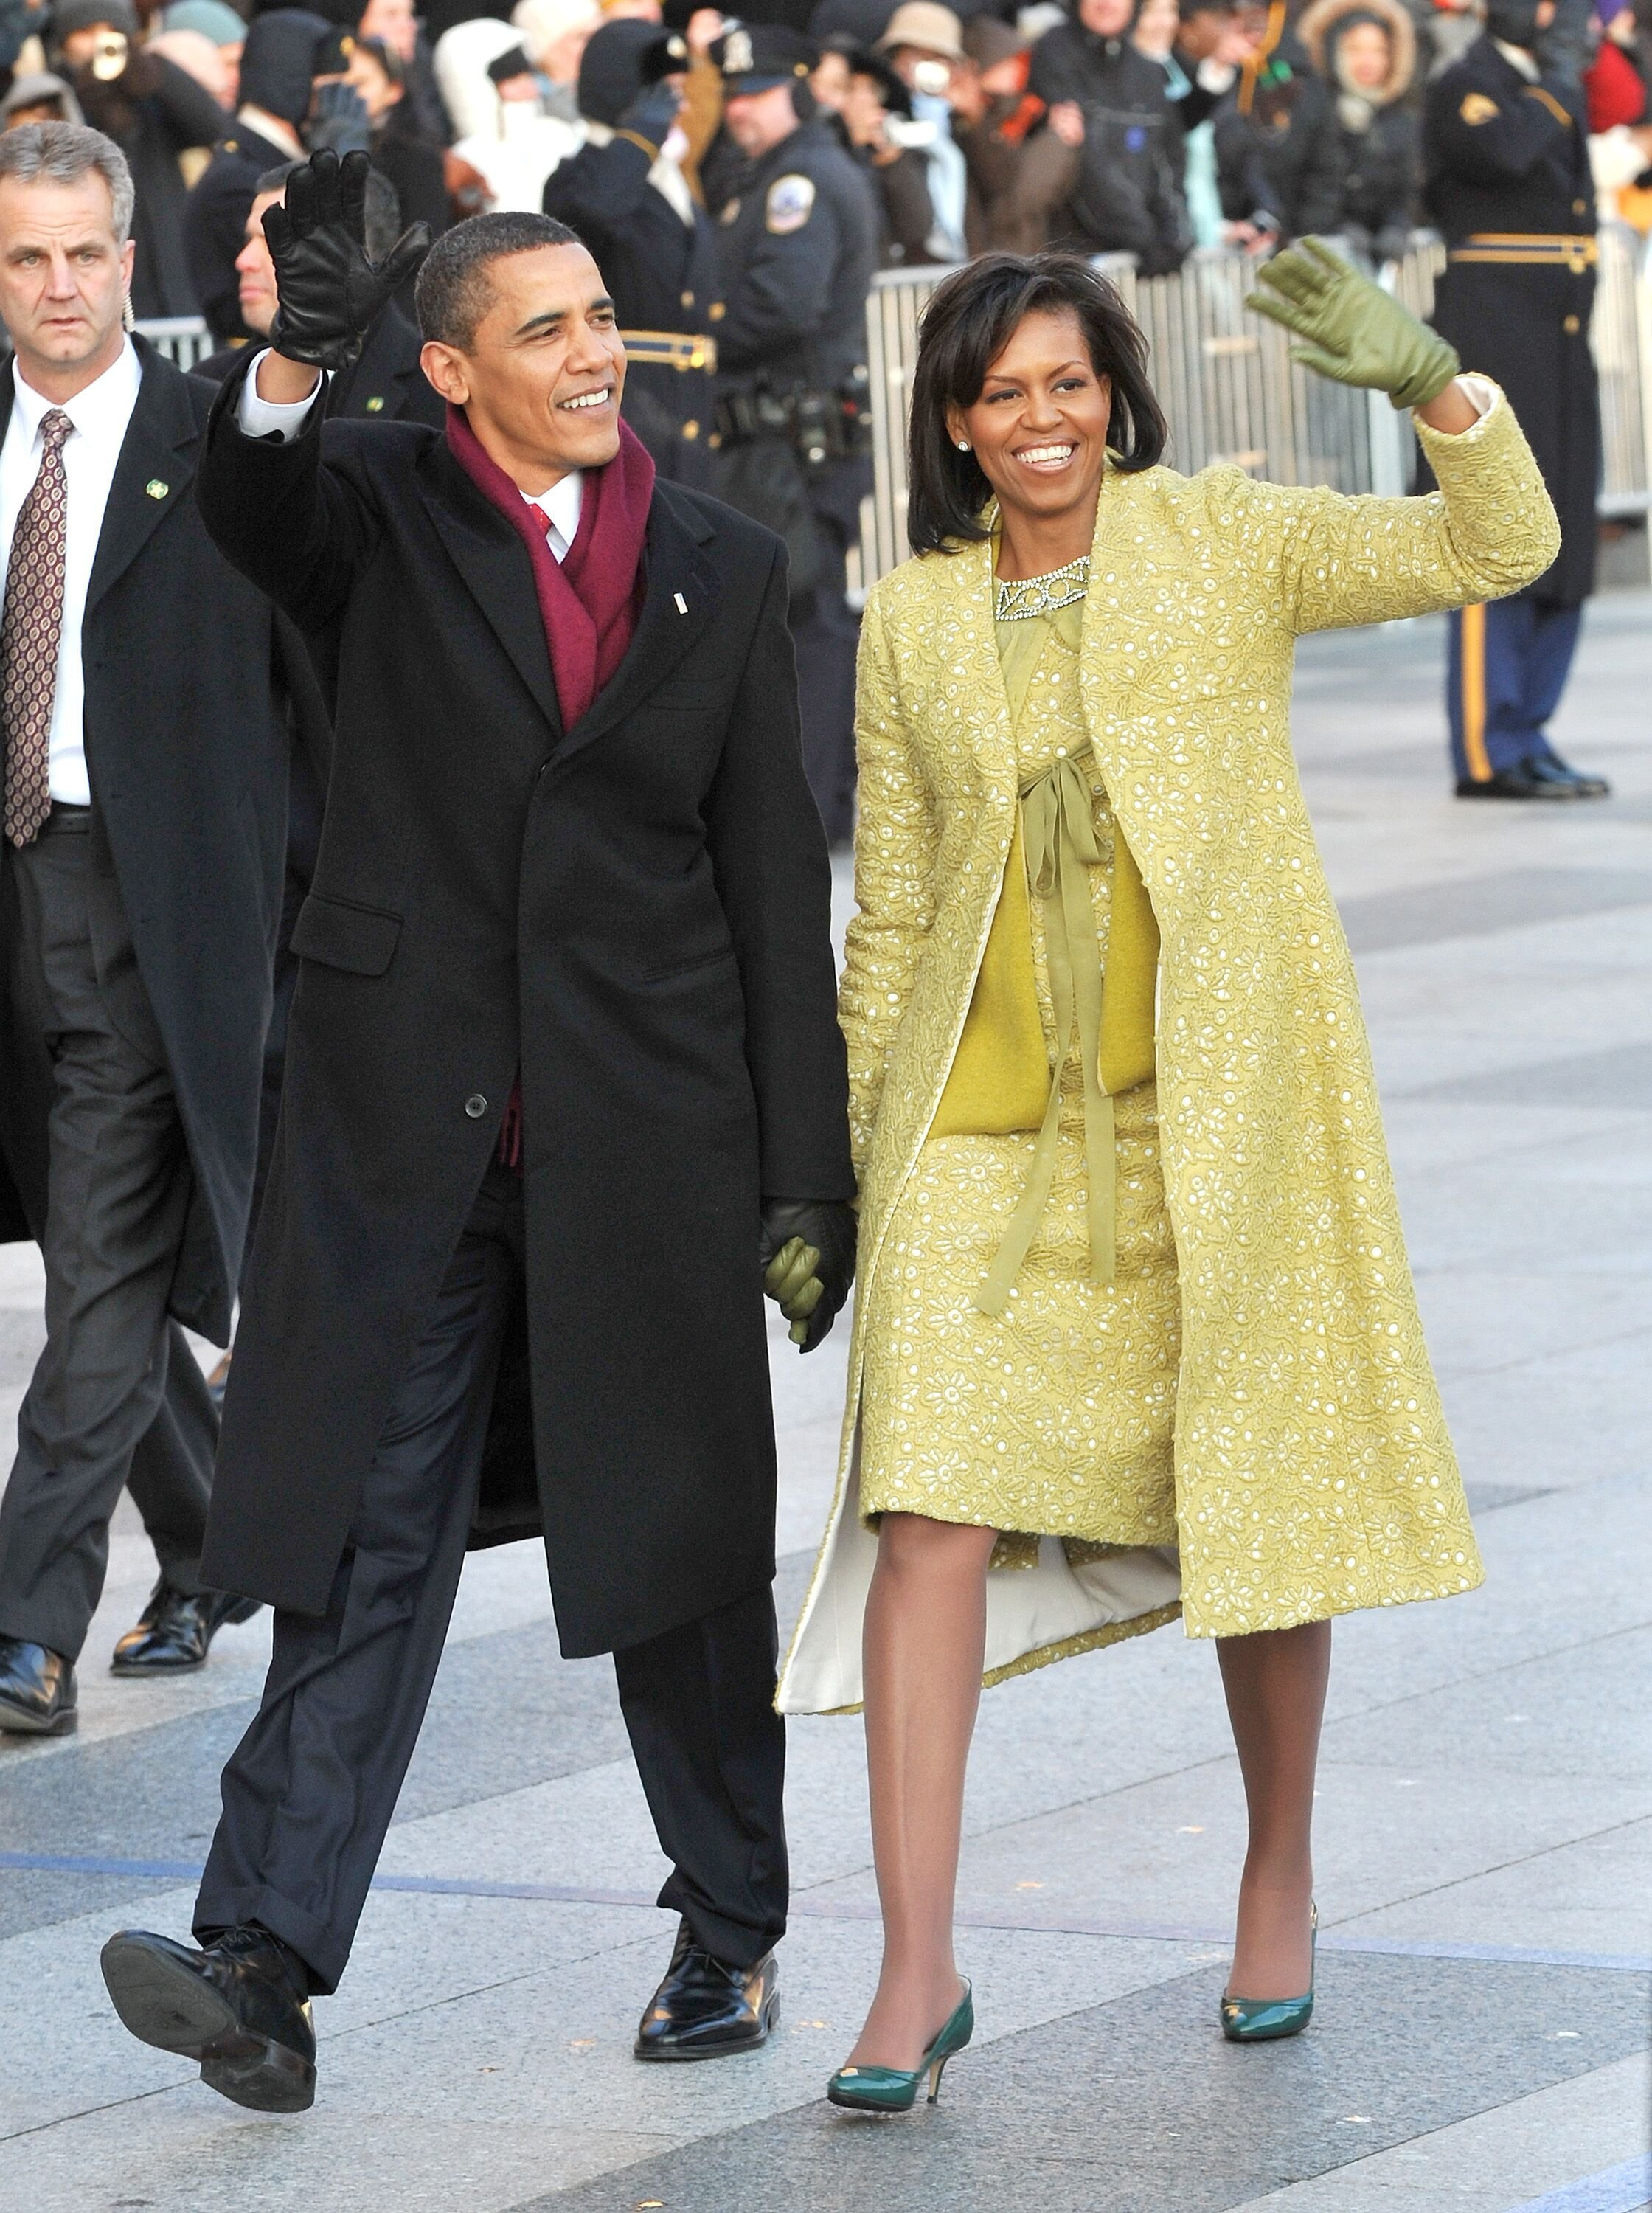 Barack Obama and first lady Michelle Obama walk in the Inaugural Parade.   Source: Getty Images